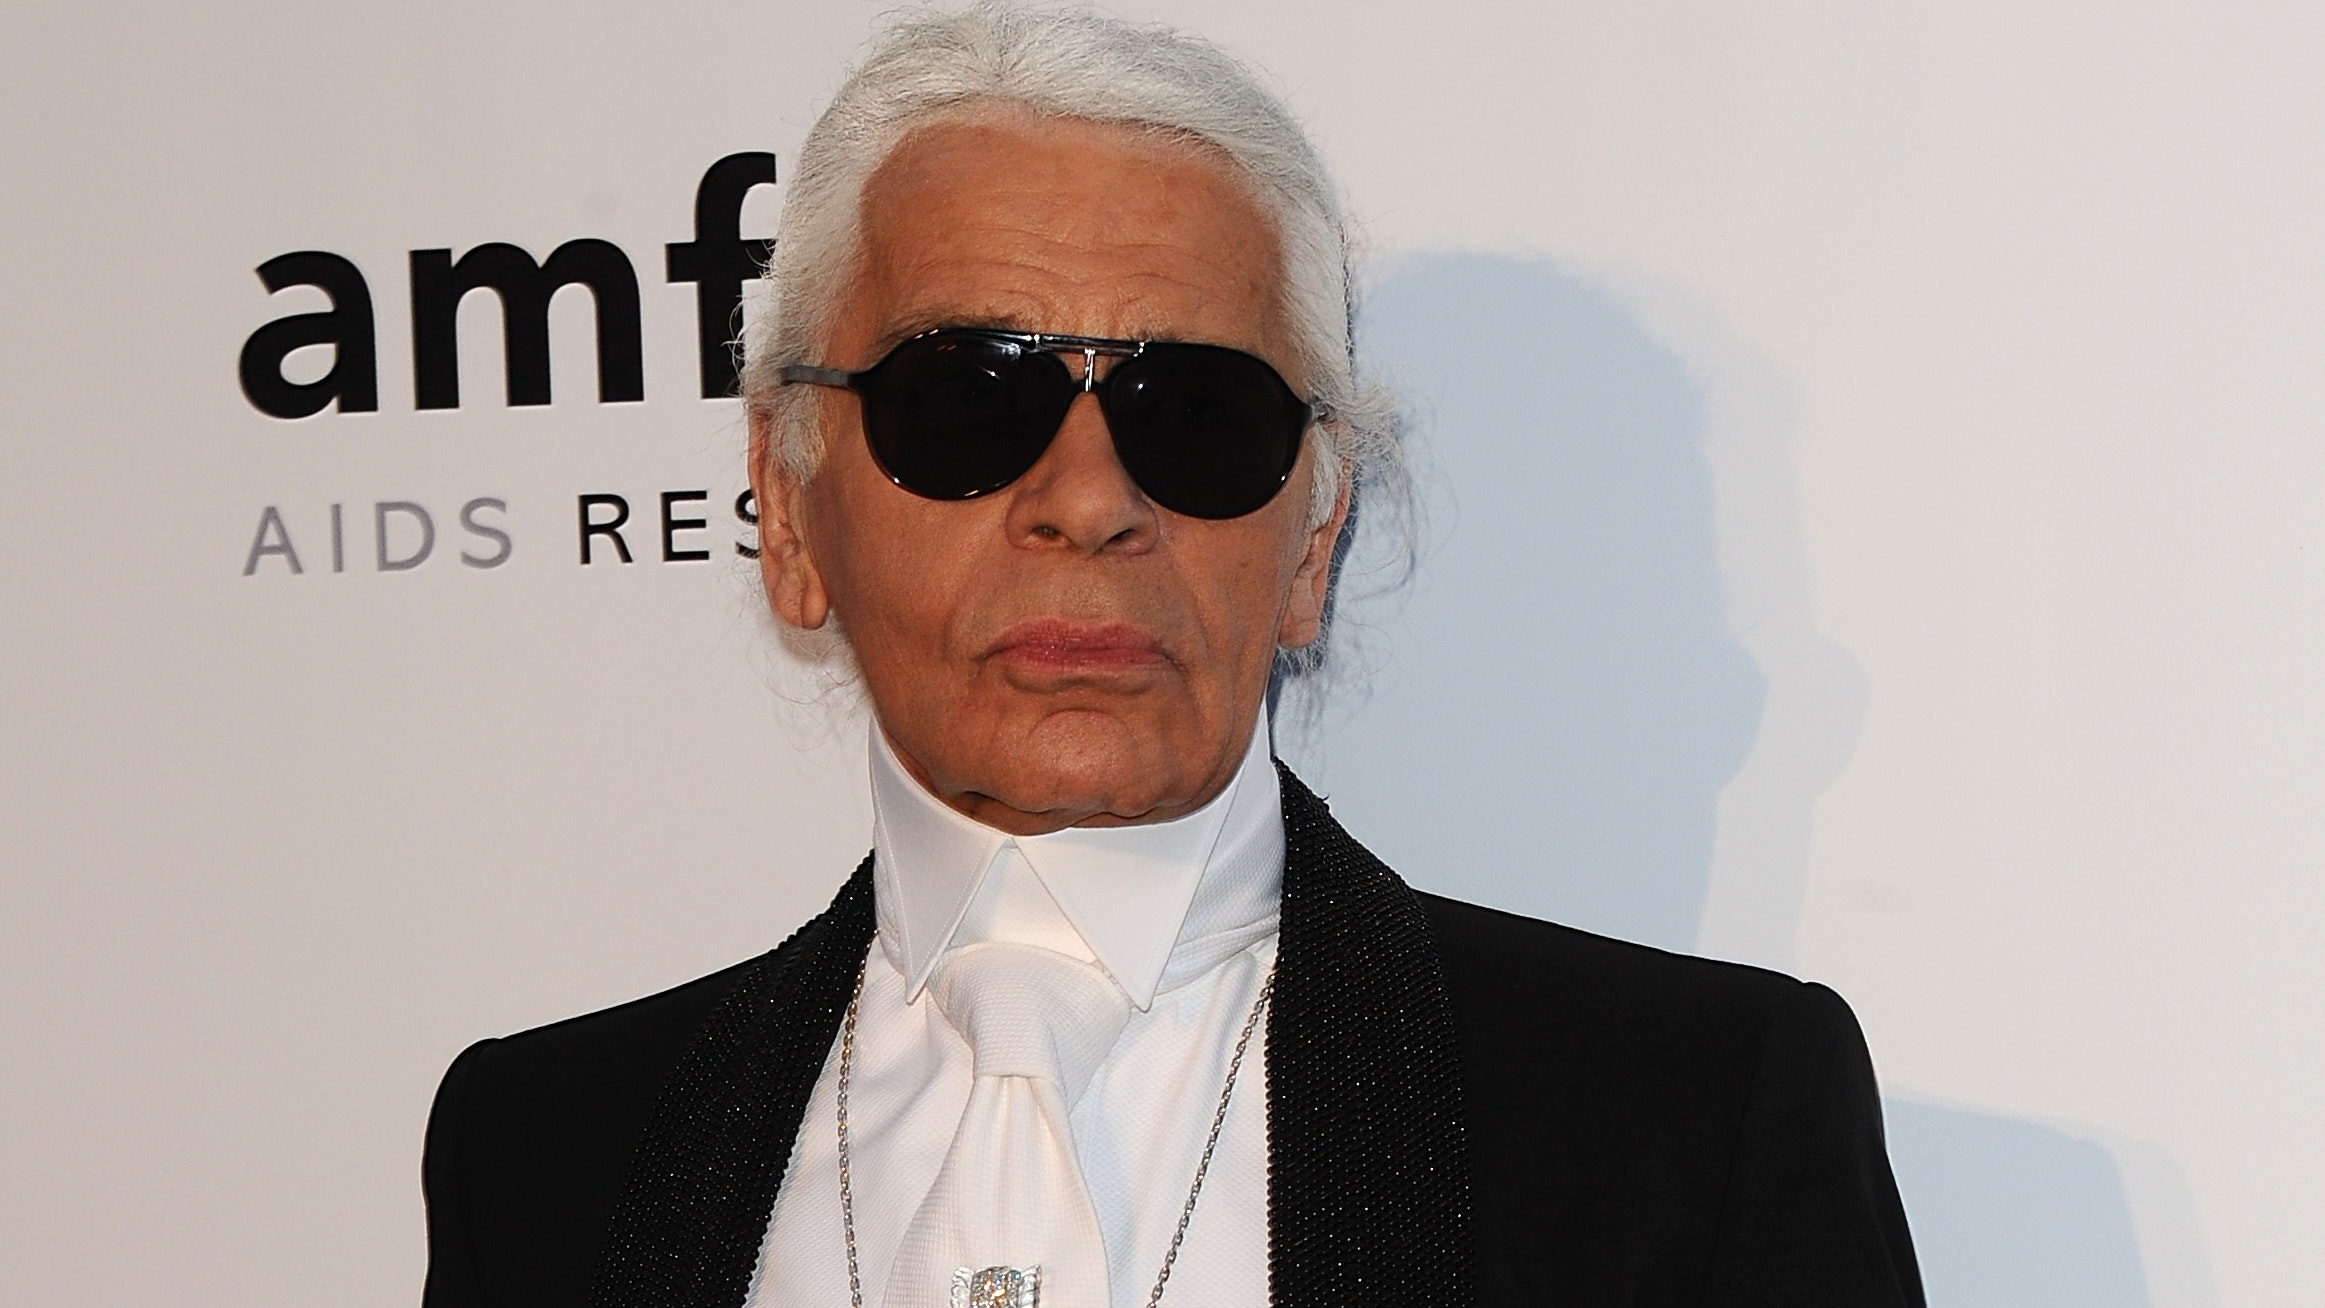 Iconic Chanel designer Karl Lagerfeld dies at the age of 85